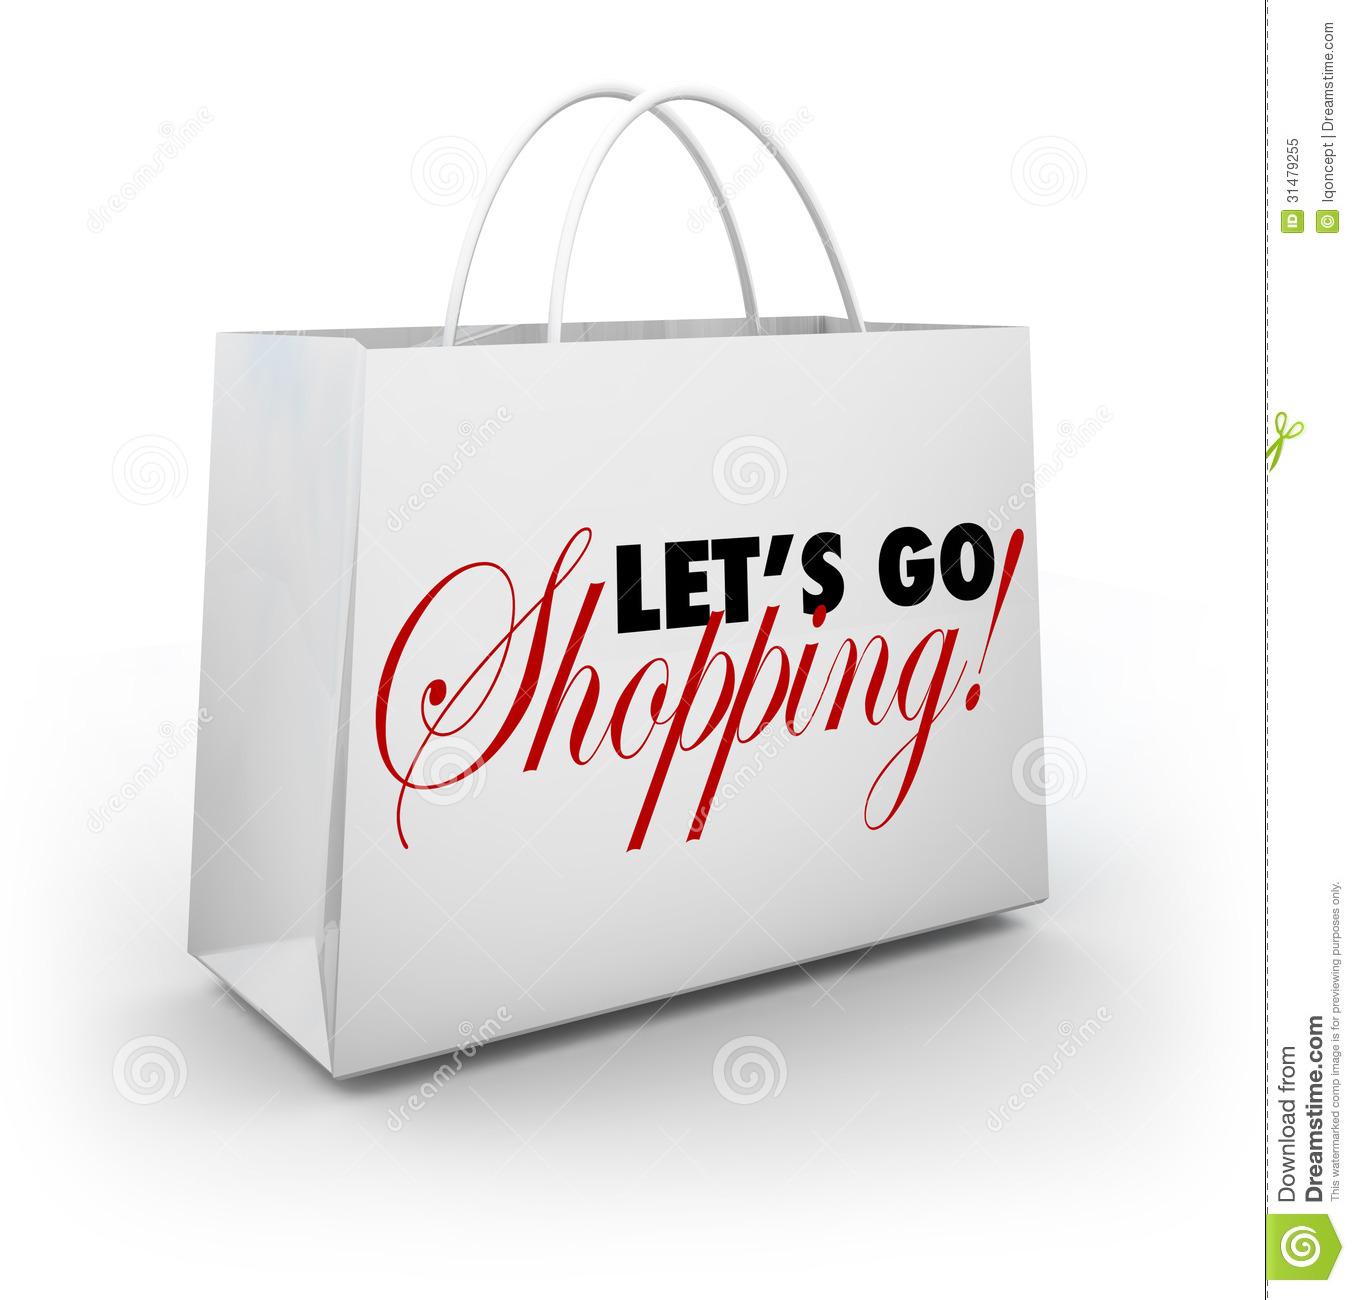 Let S Go Shopping White Merchandise Bag Words Royalty Free